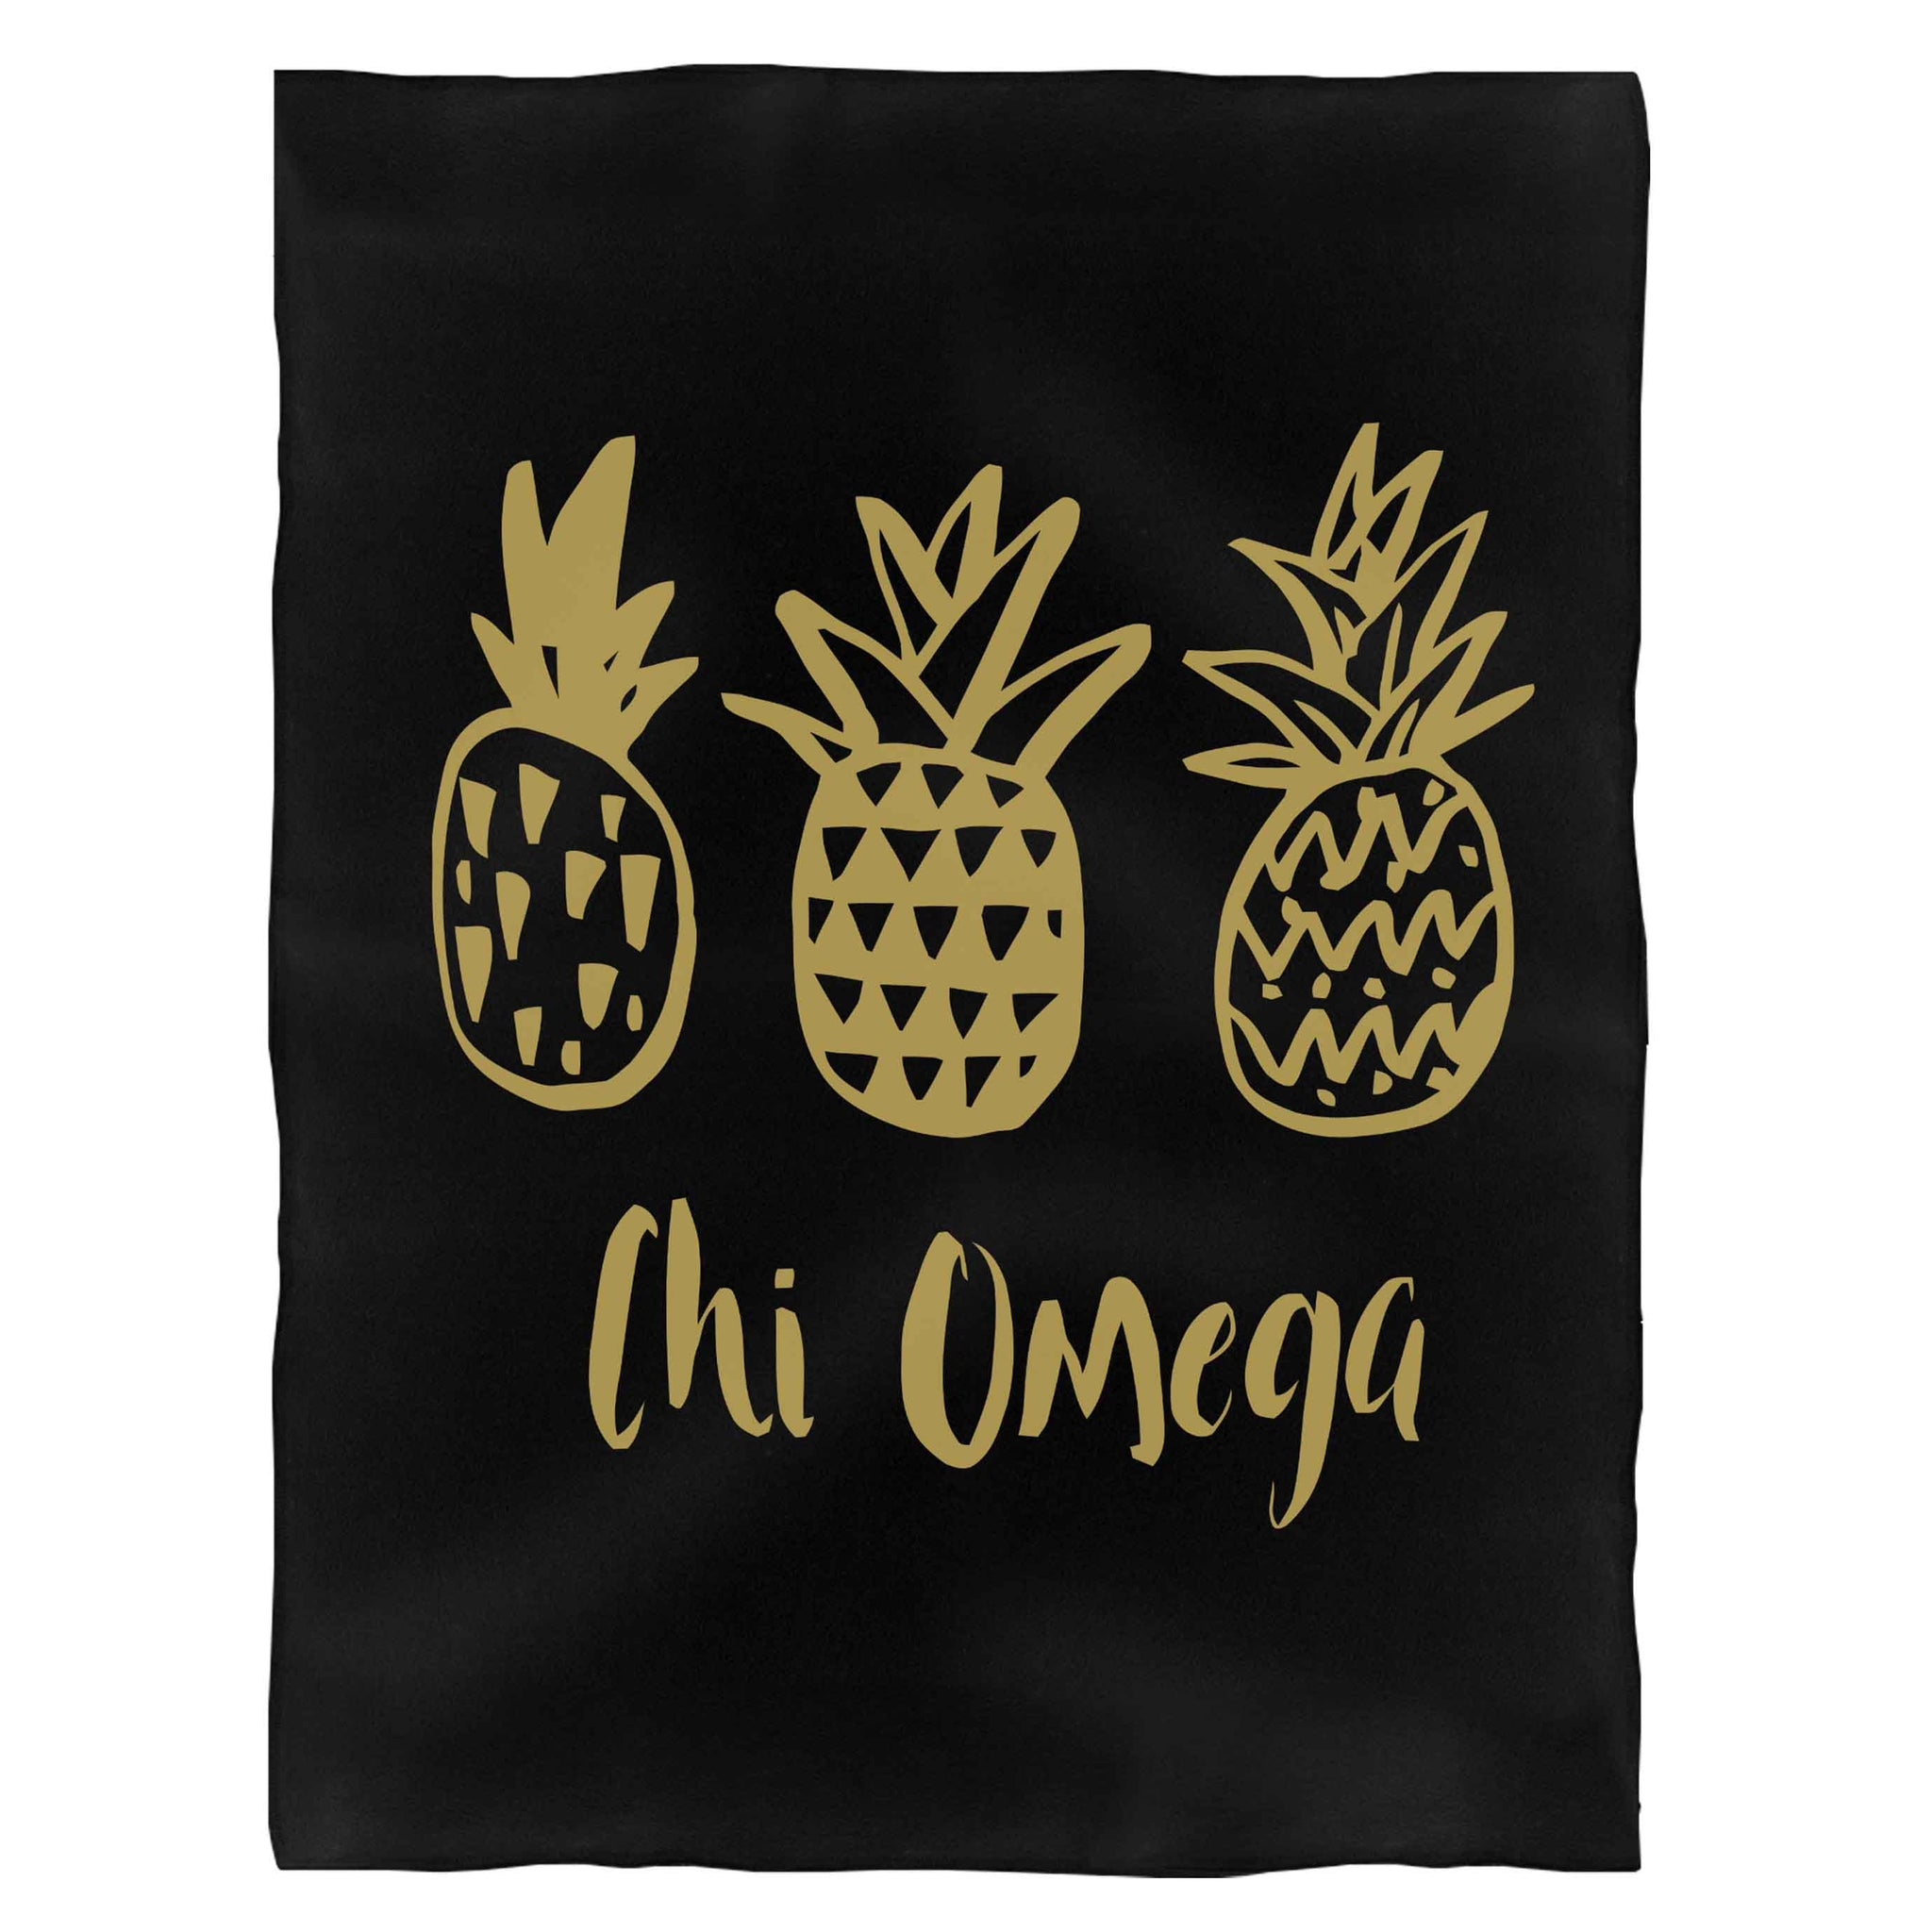 Chio Chi Omega Faux Gold Foil Pineapple Fleece Blanket